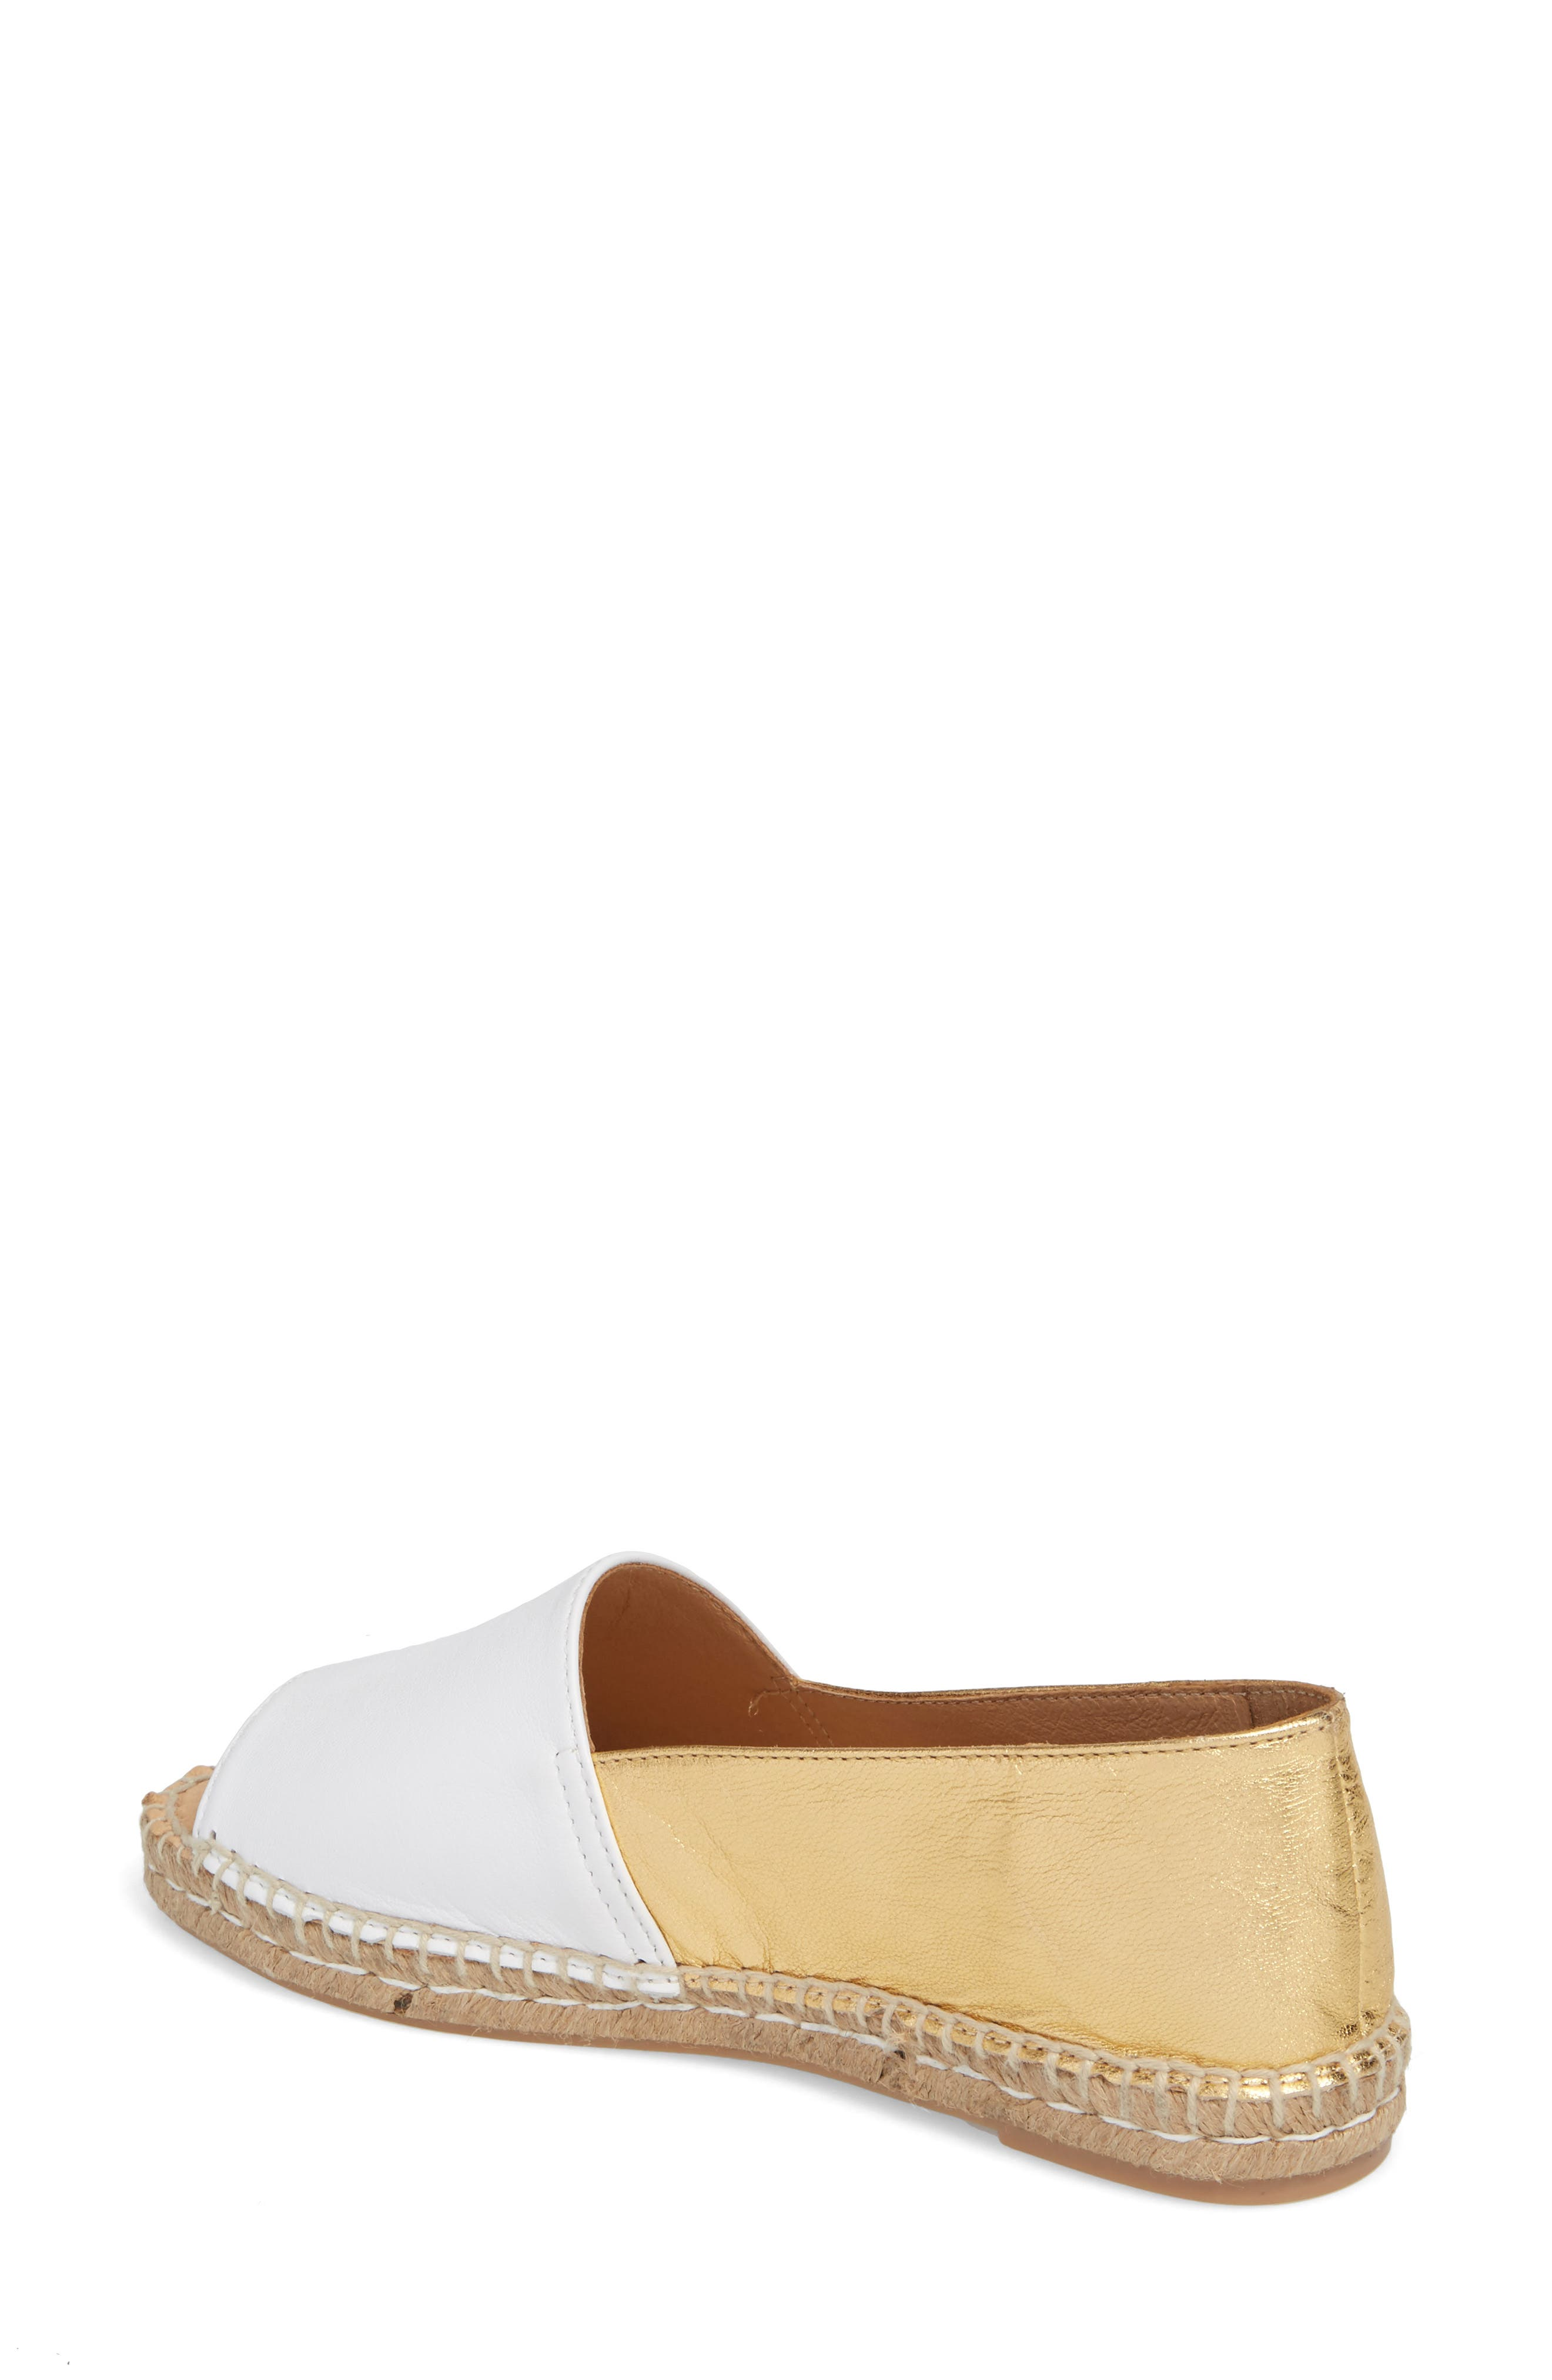 Milly Espadrille,                             Alternate thumbnail 4, color,